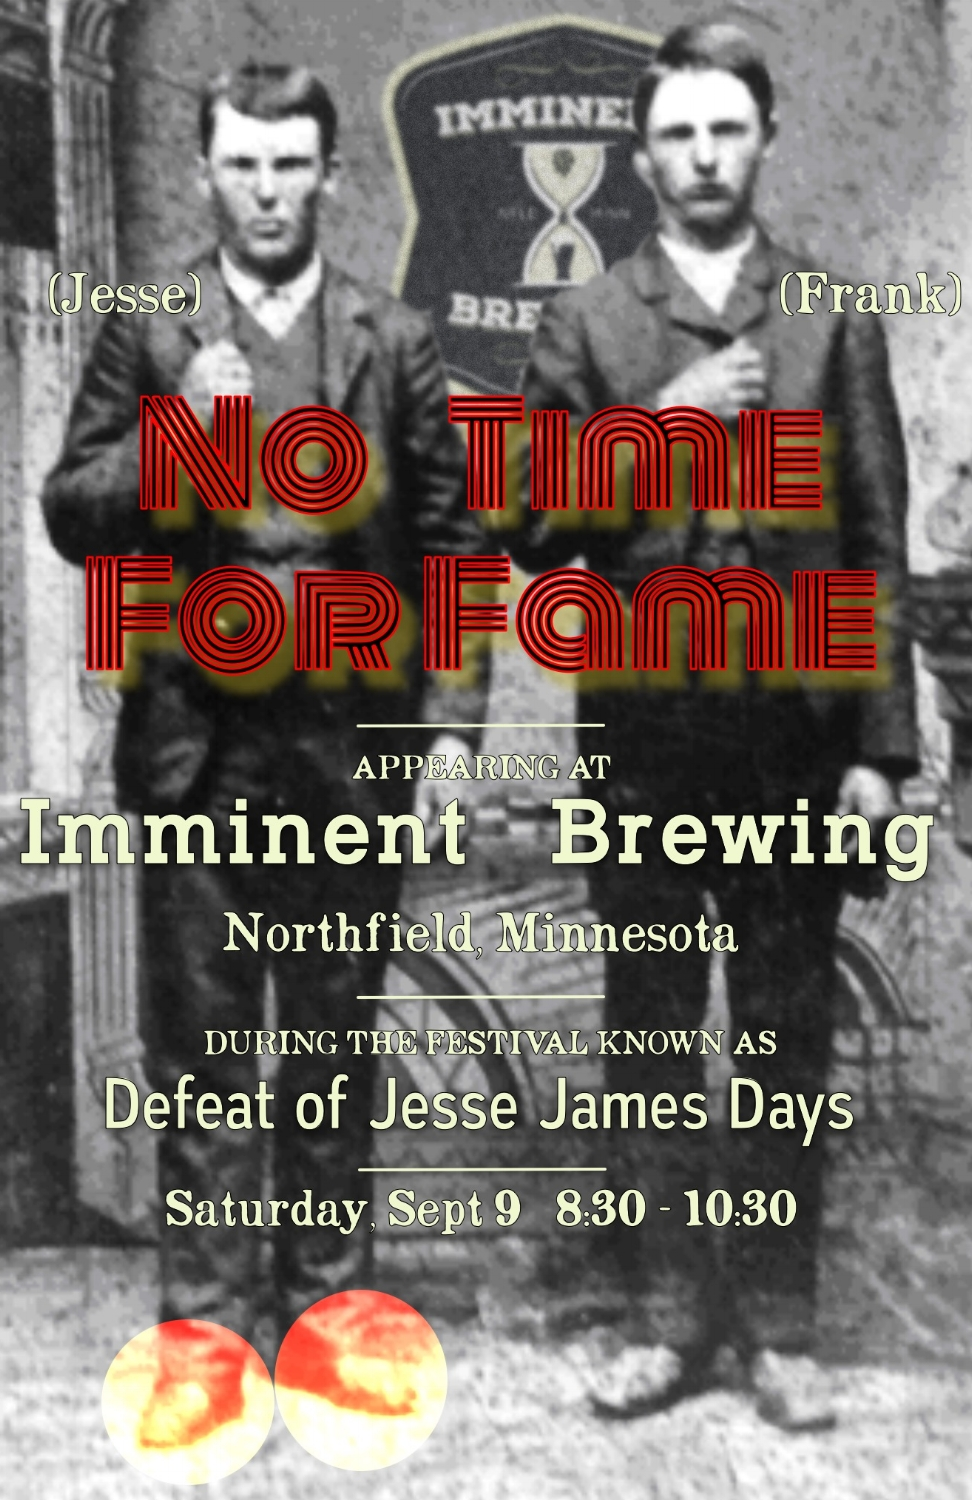 Imminent Brewing - Northfield, MNDefeat of Jesse James Days WeekendSeptember 9, 20178:30 - 10:30